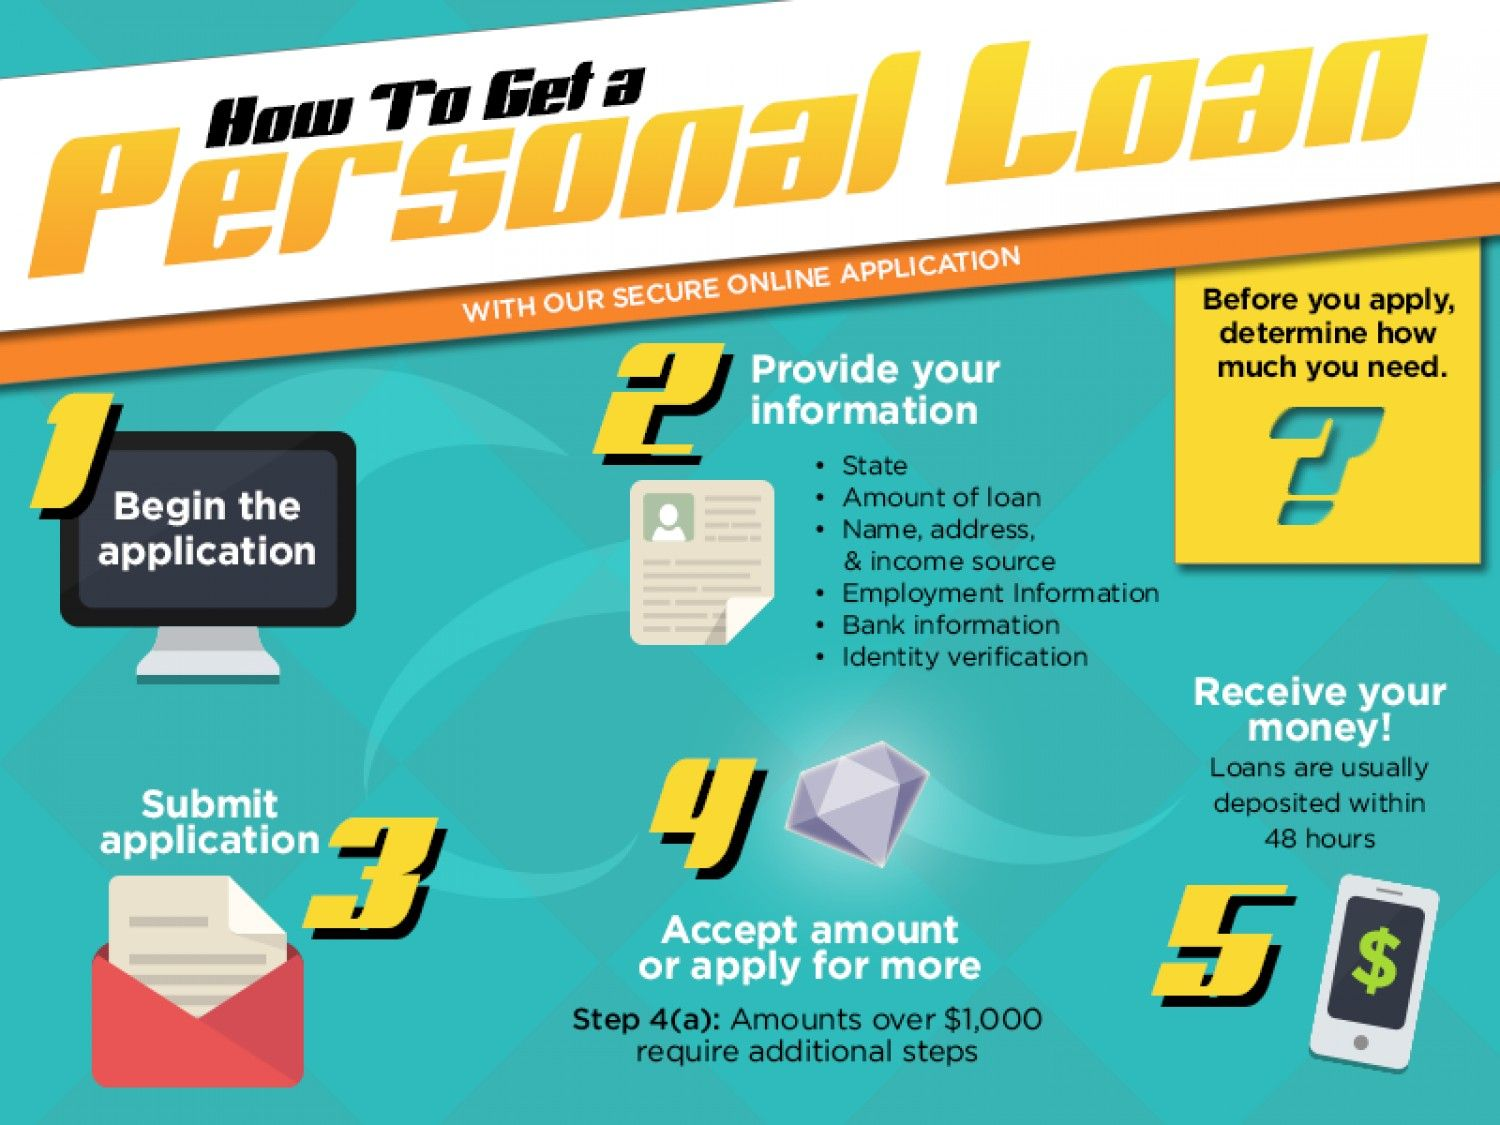 How To Get A Personal Loan Infographic  Finance